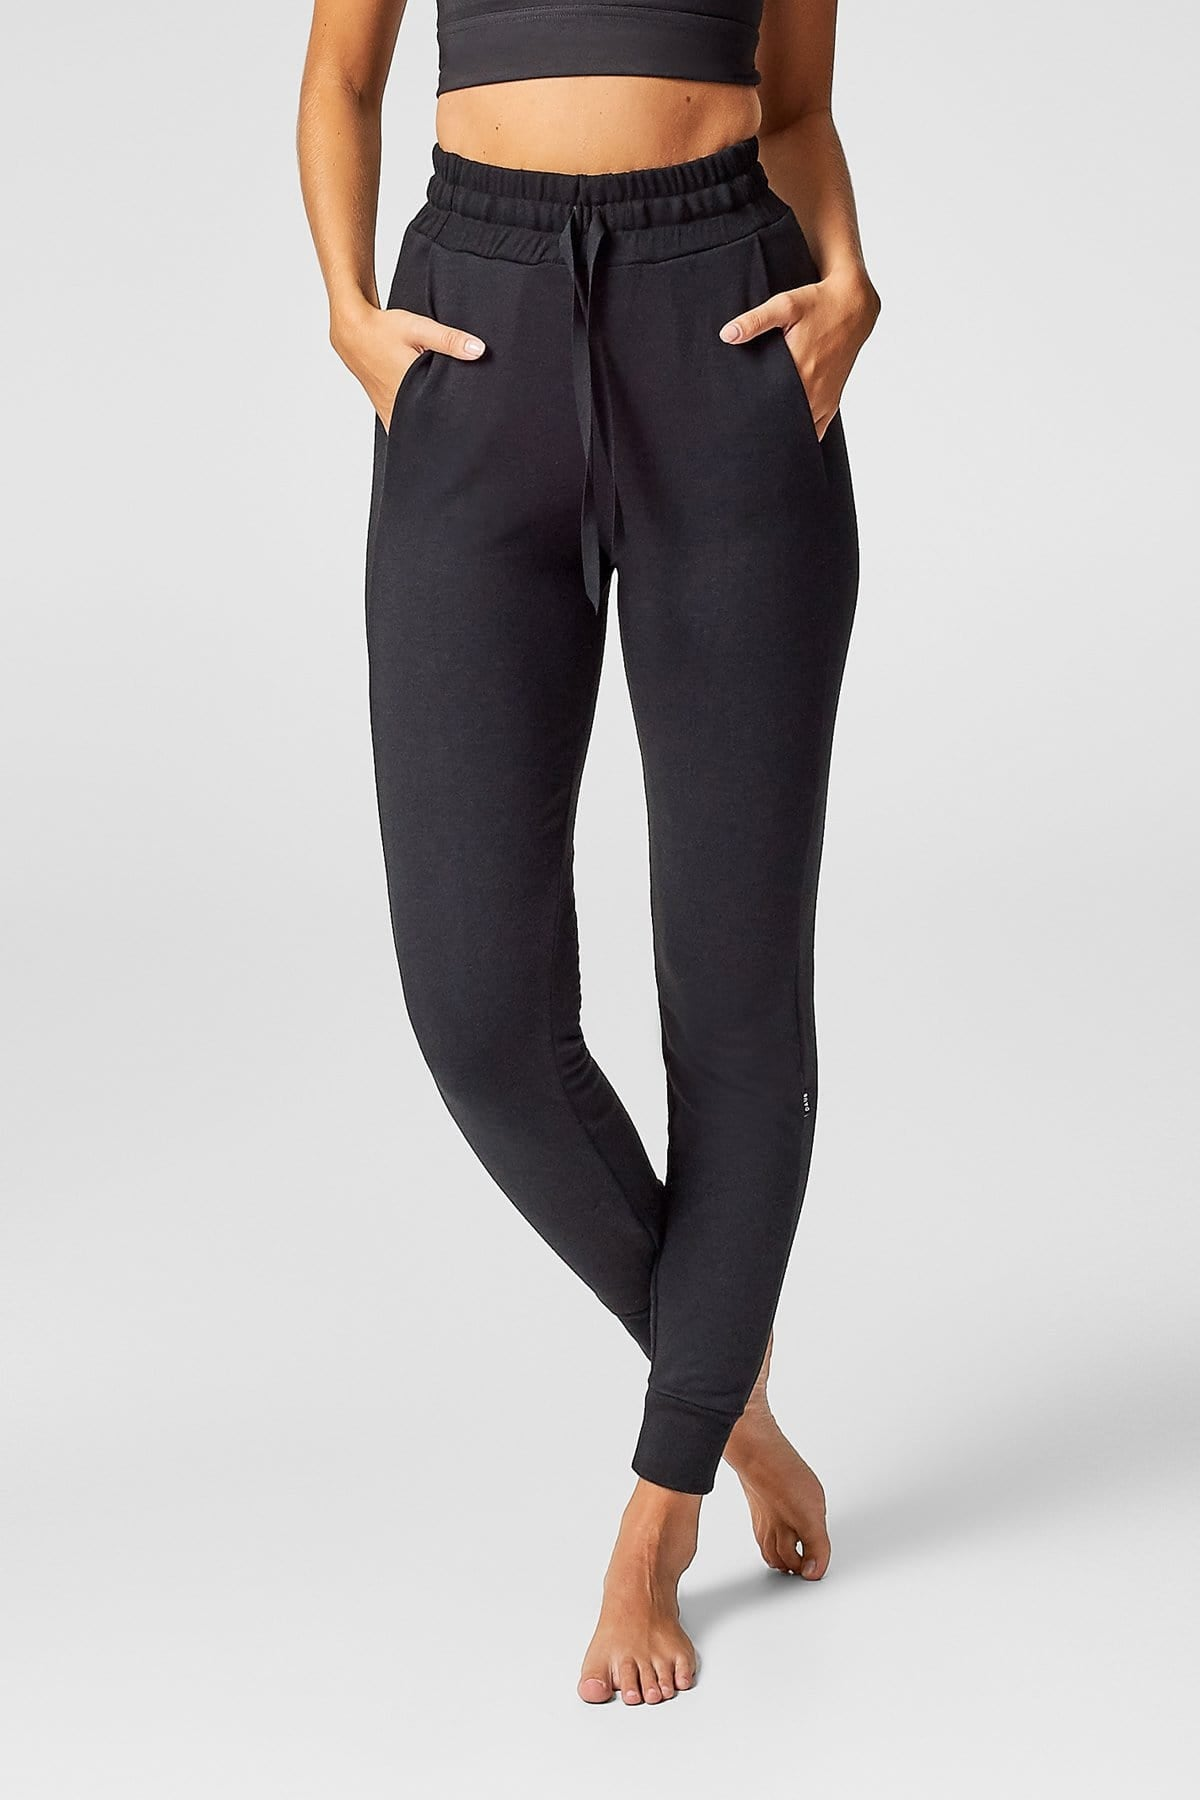 A tanned woman wears a pair of black fleece sweatpants with a drawstring.